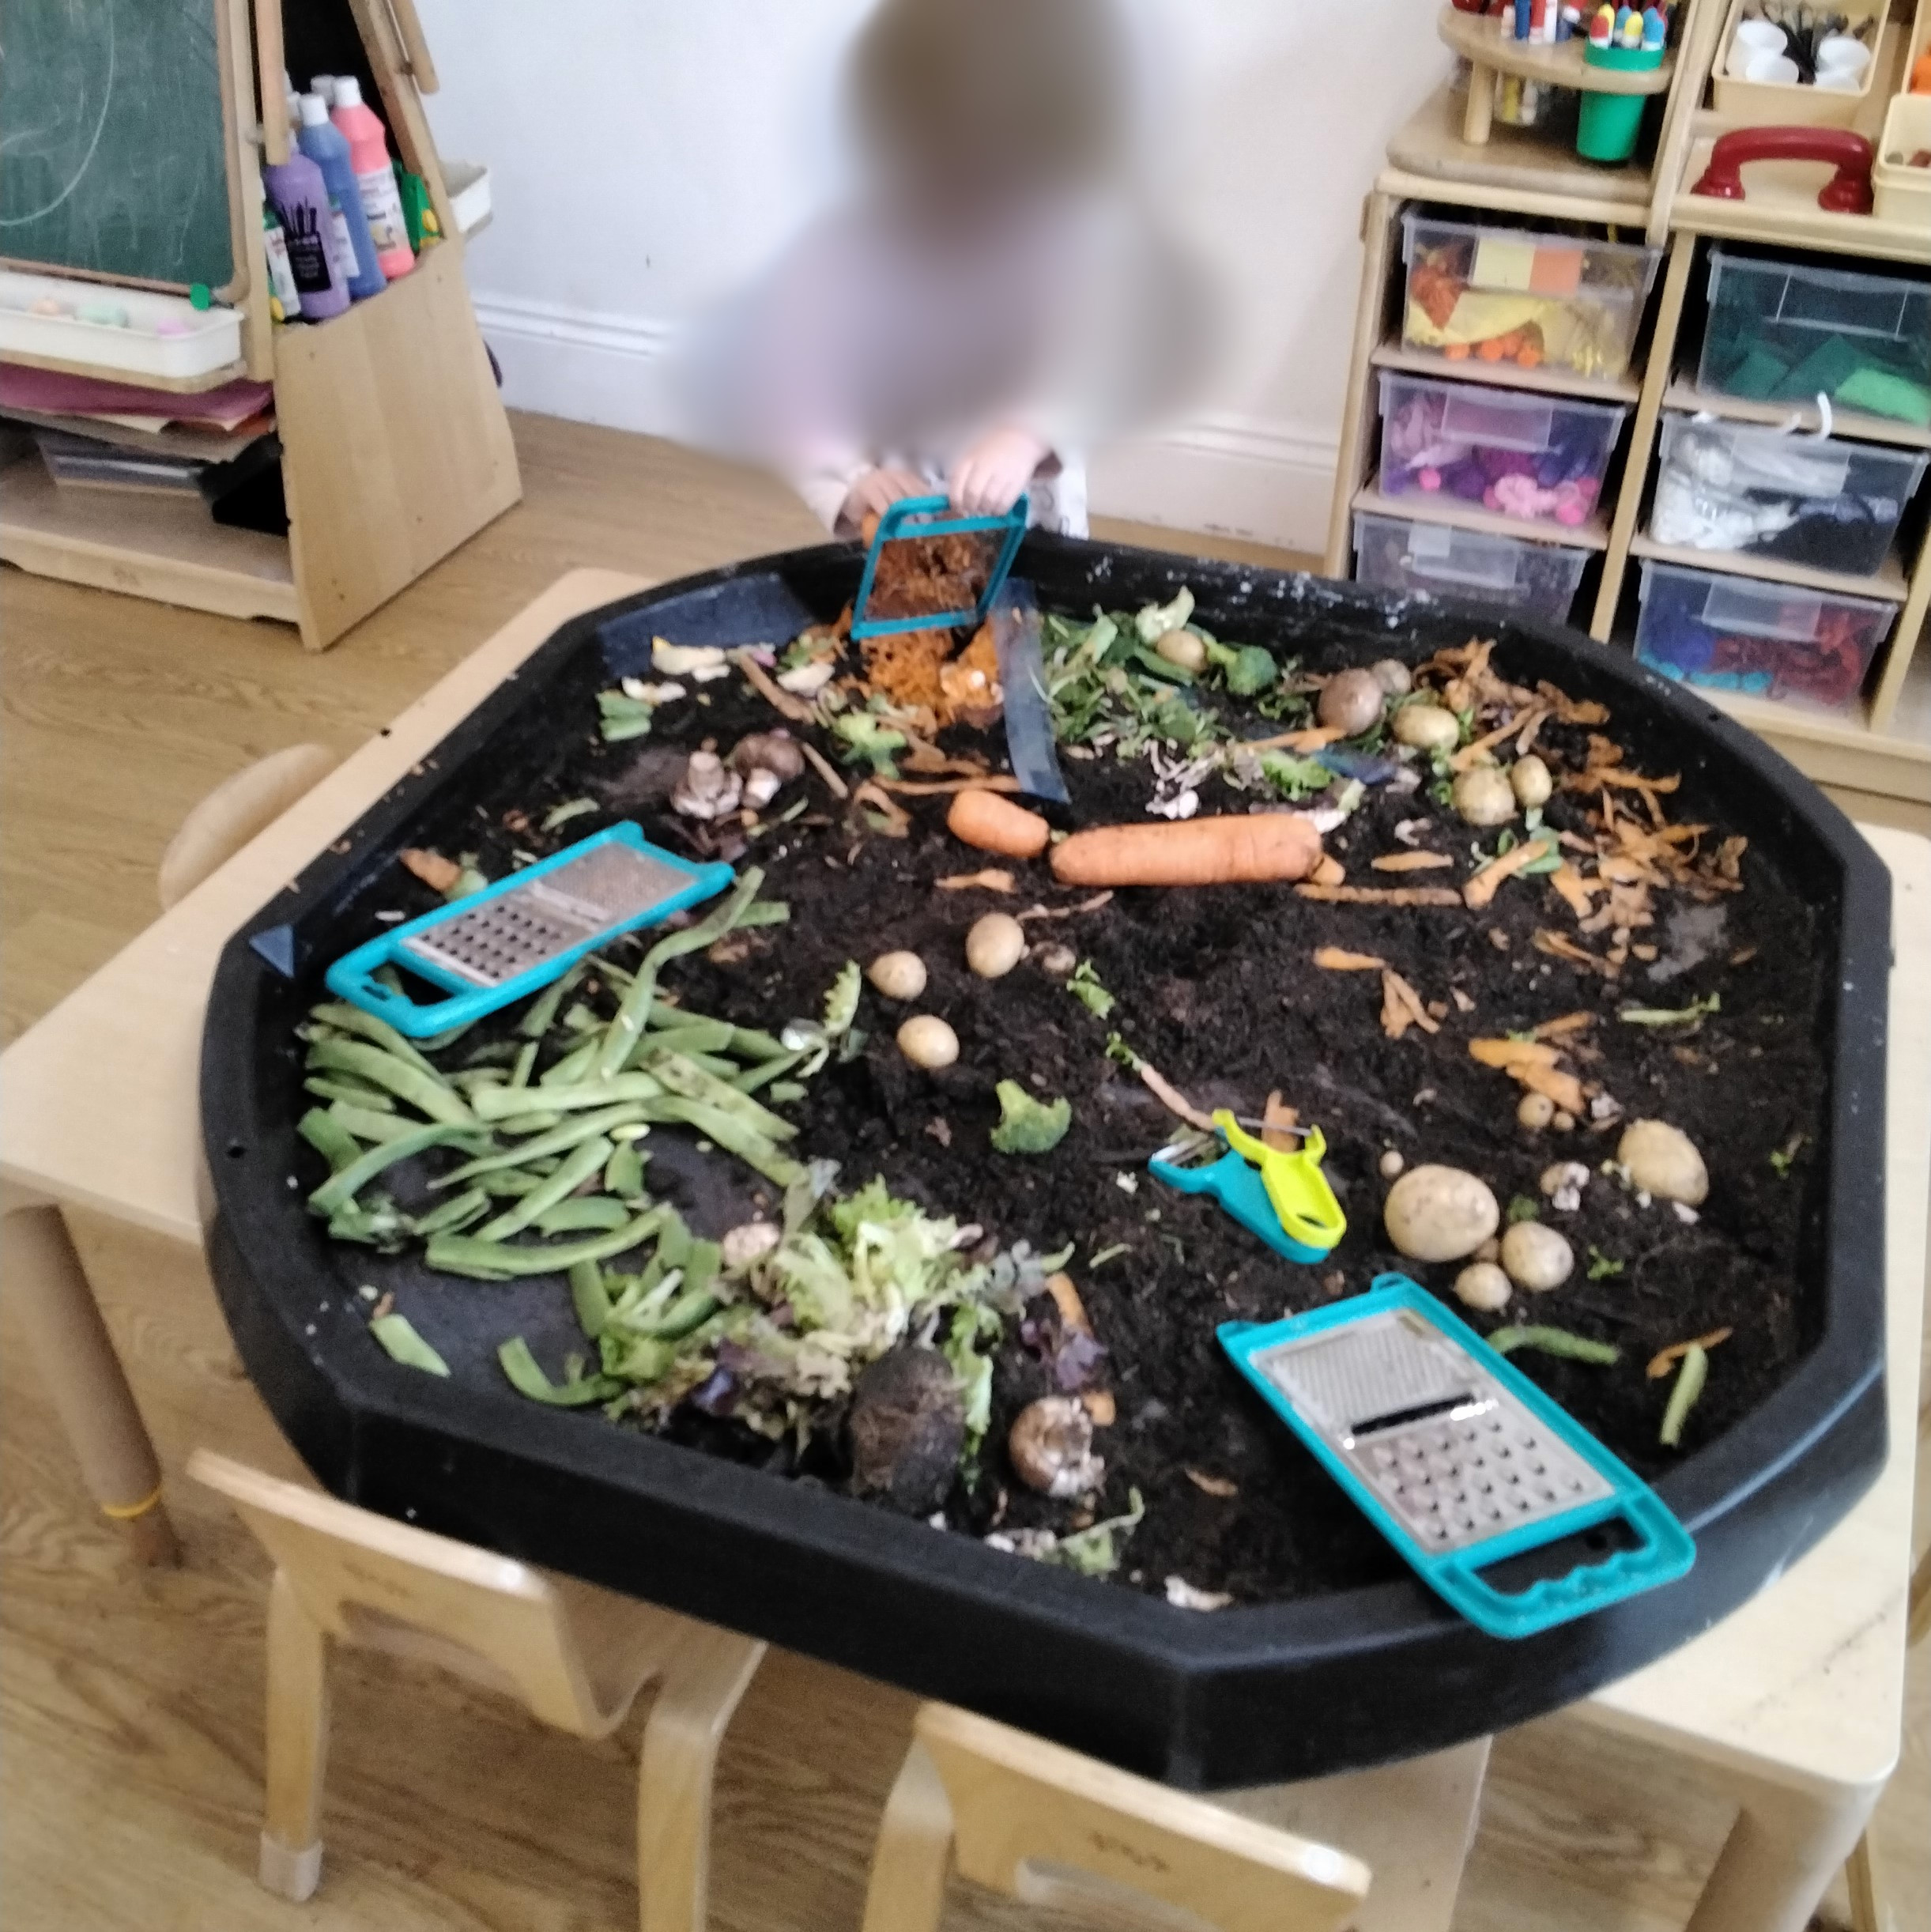 We turned our creative area into an allotment